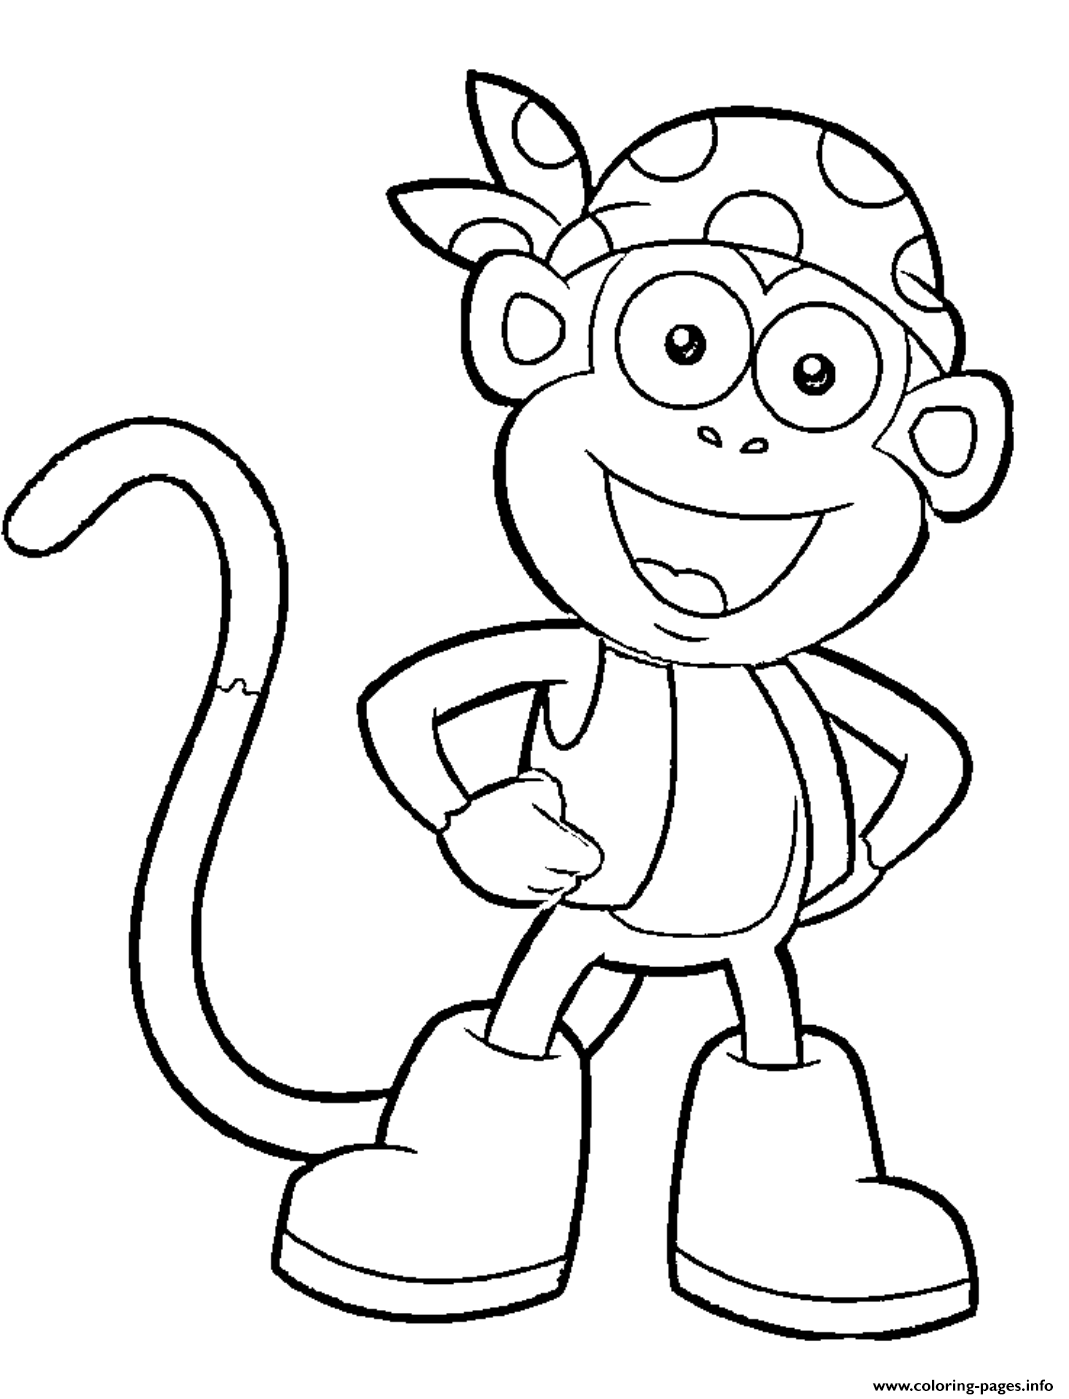 printable dora pictures free printable dora the explorer coloring pages for kids pictures dora printable